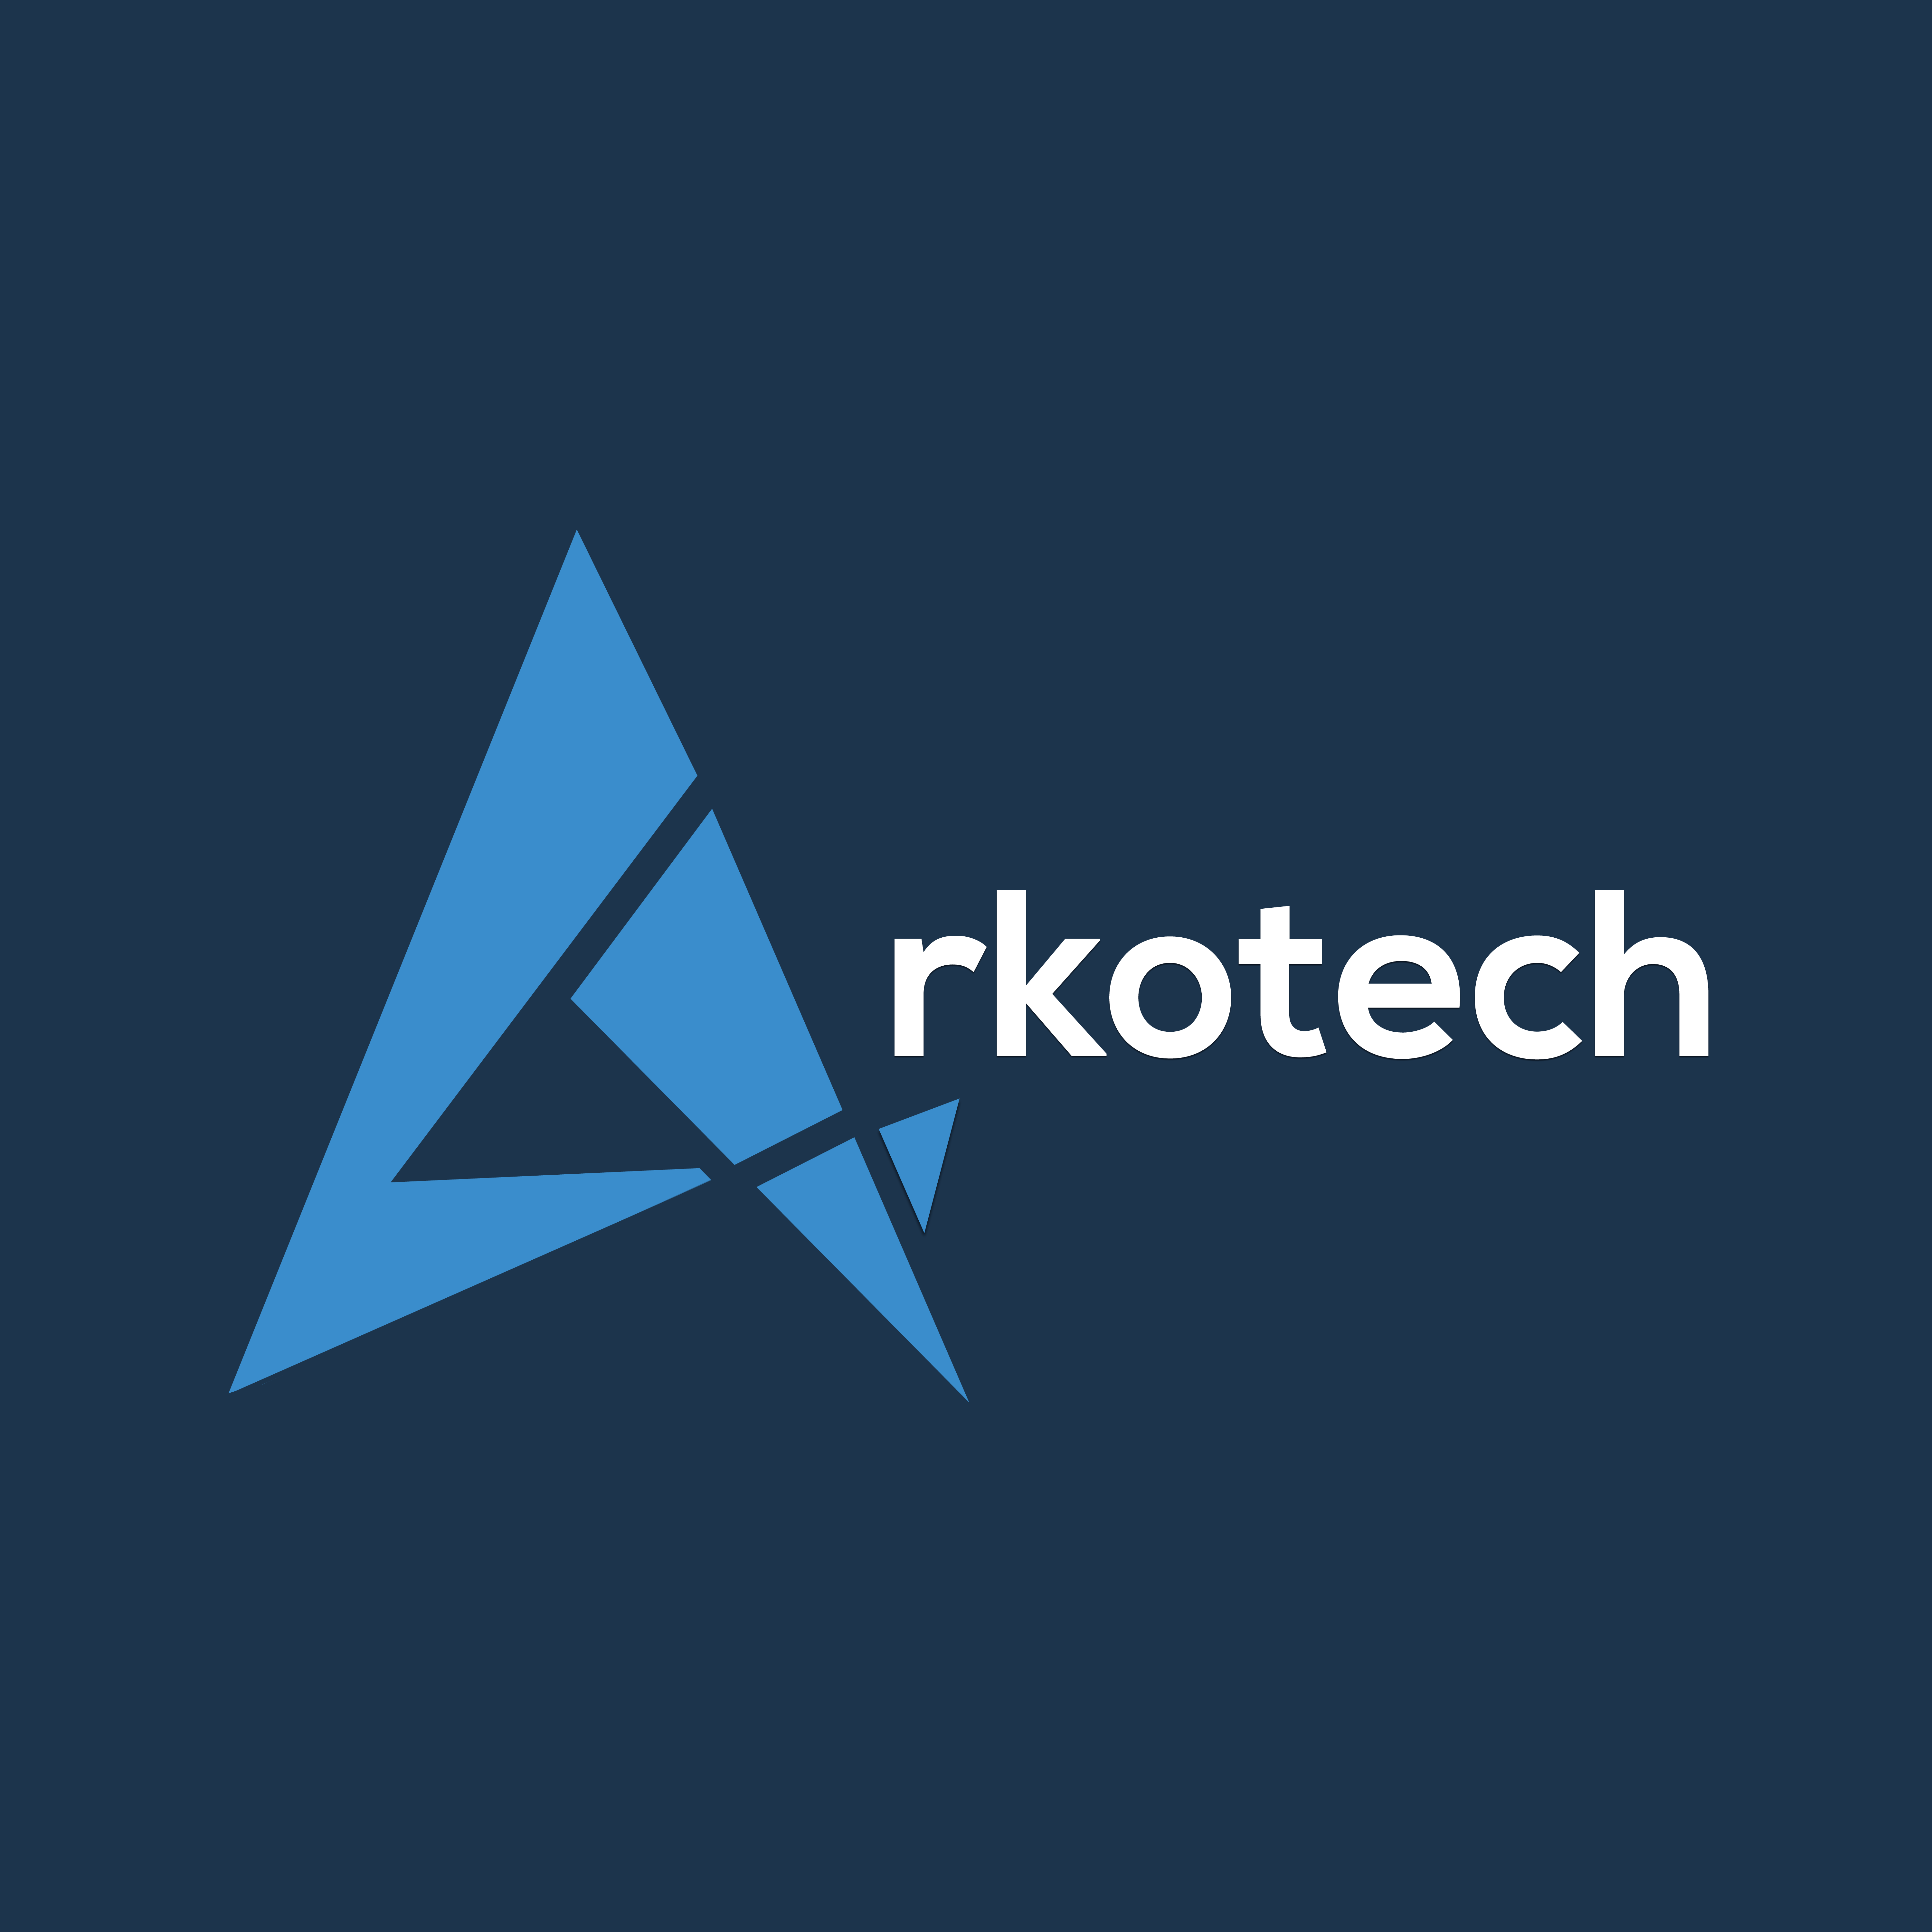 Arkotech Corporation